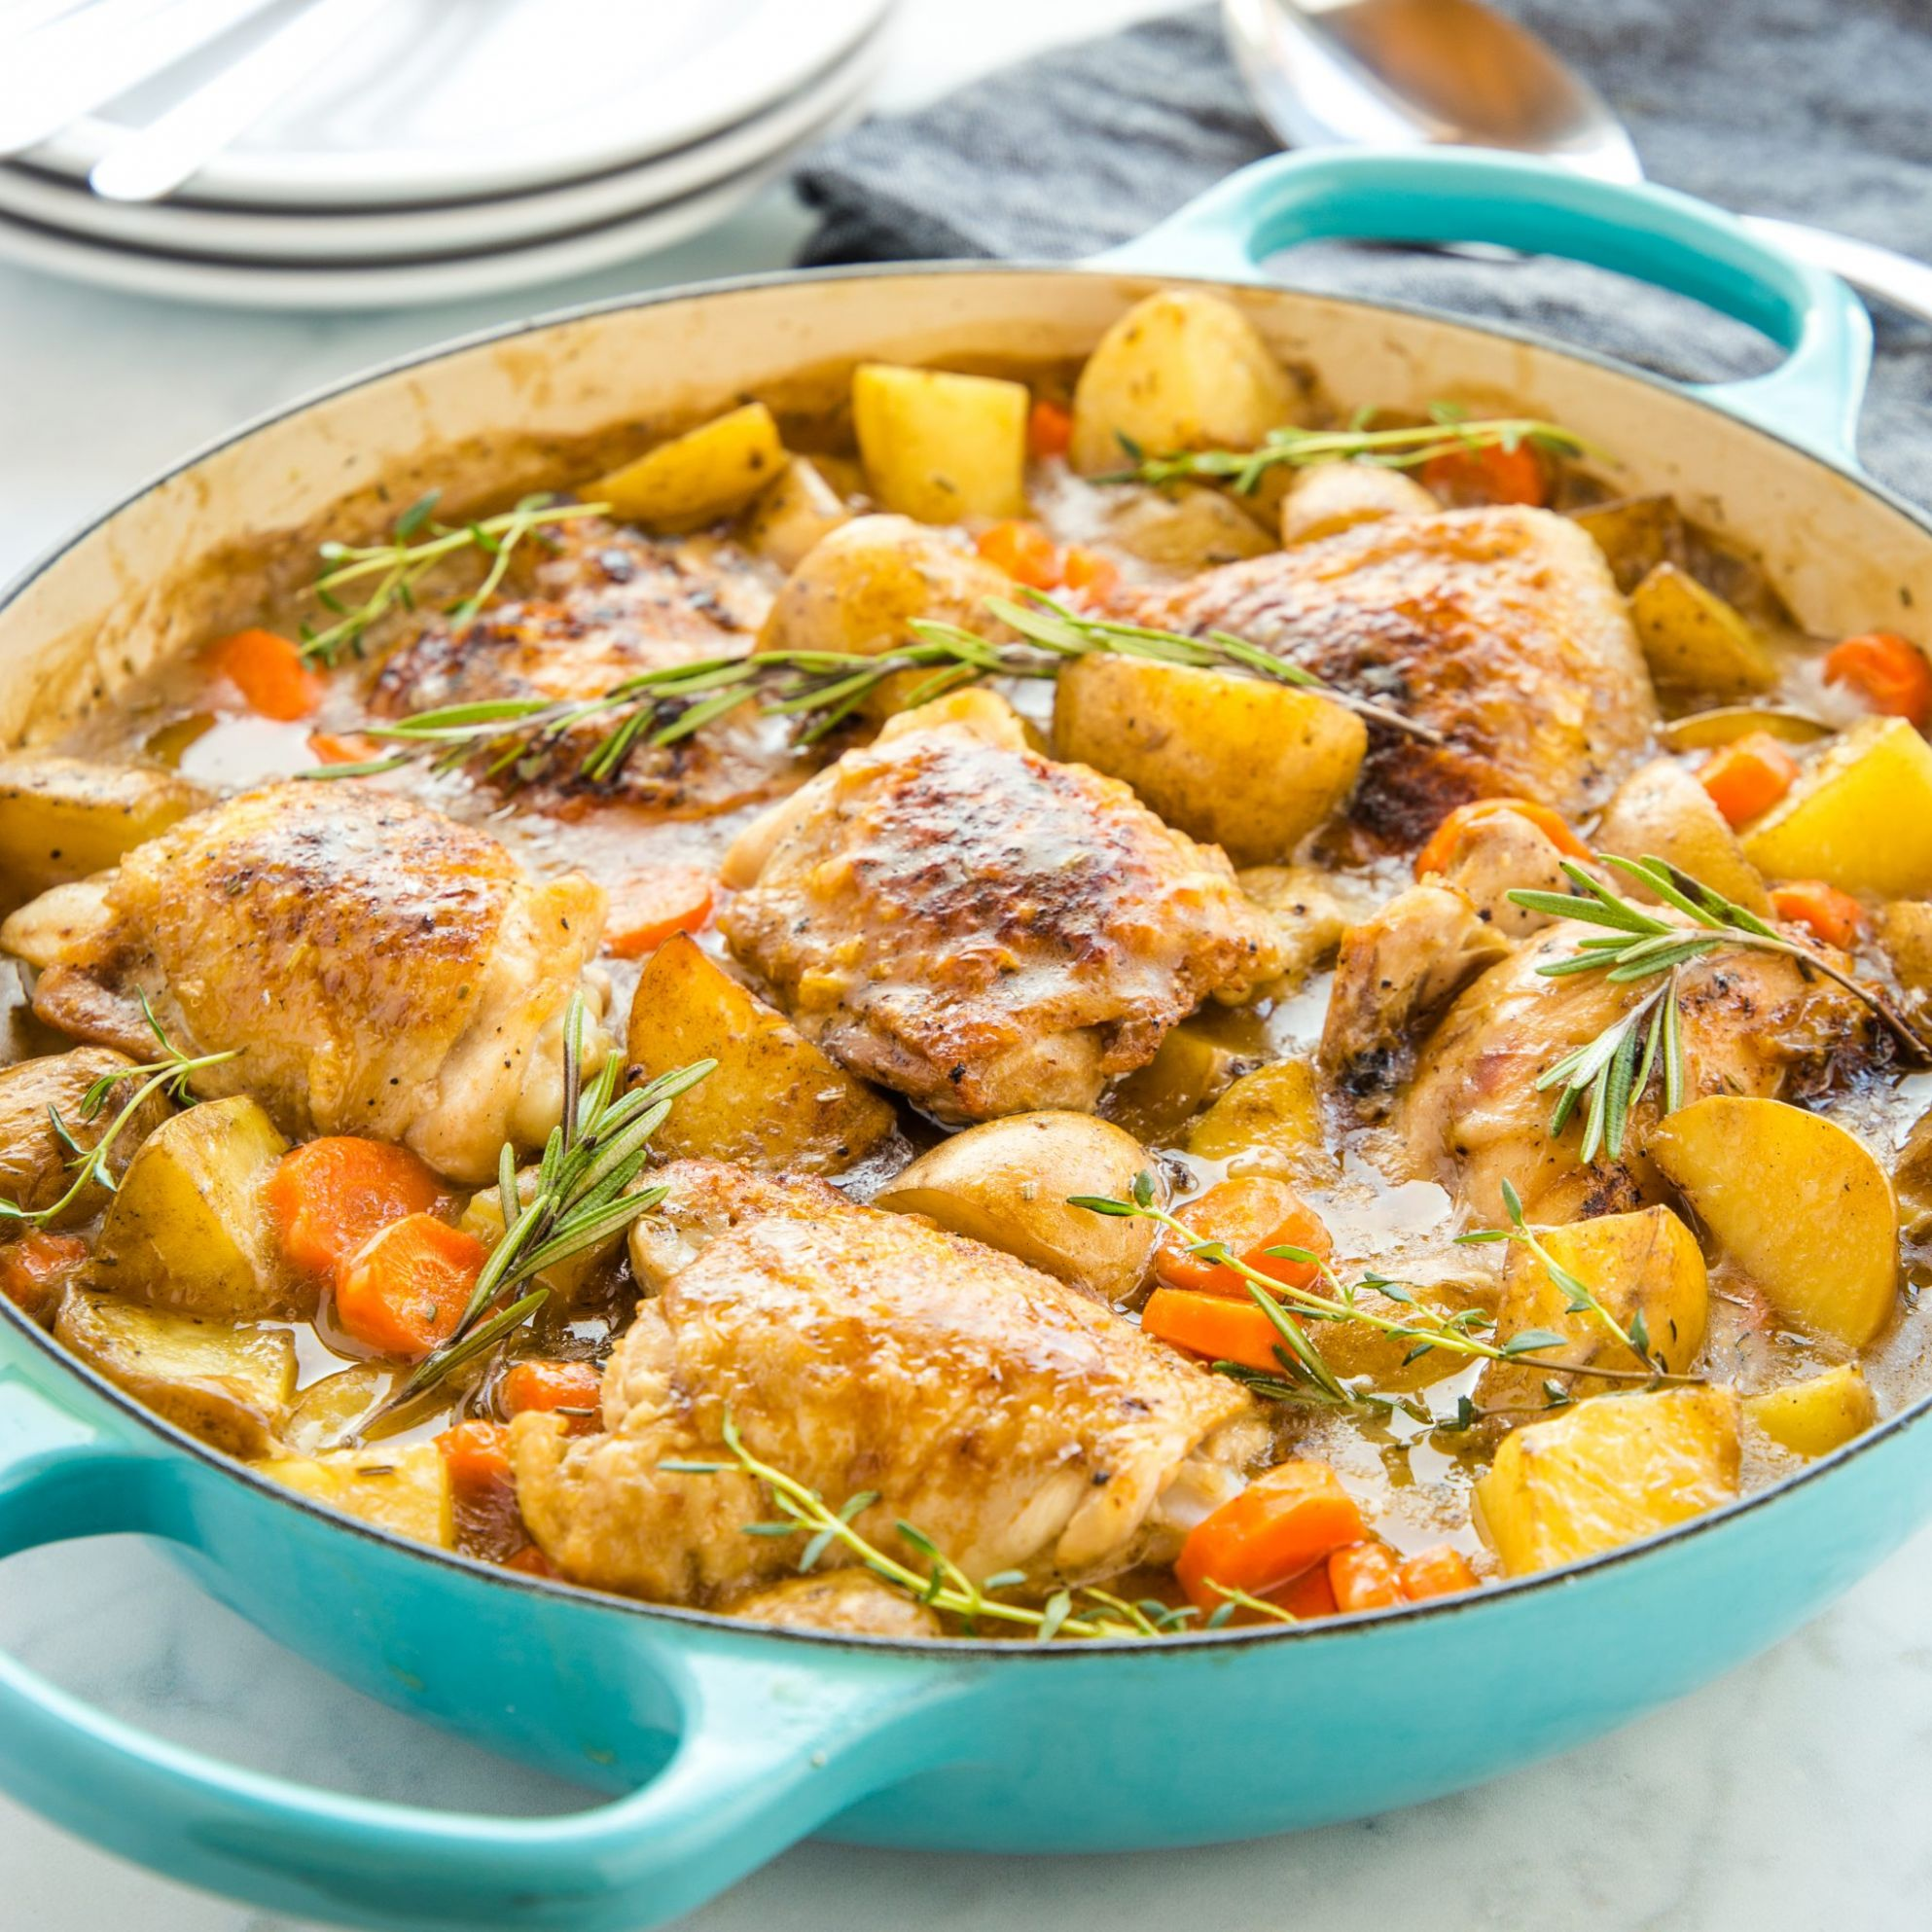 Easy One Pot Roasted Chicken Dinner - Food Recipes Chicken